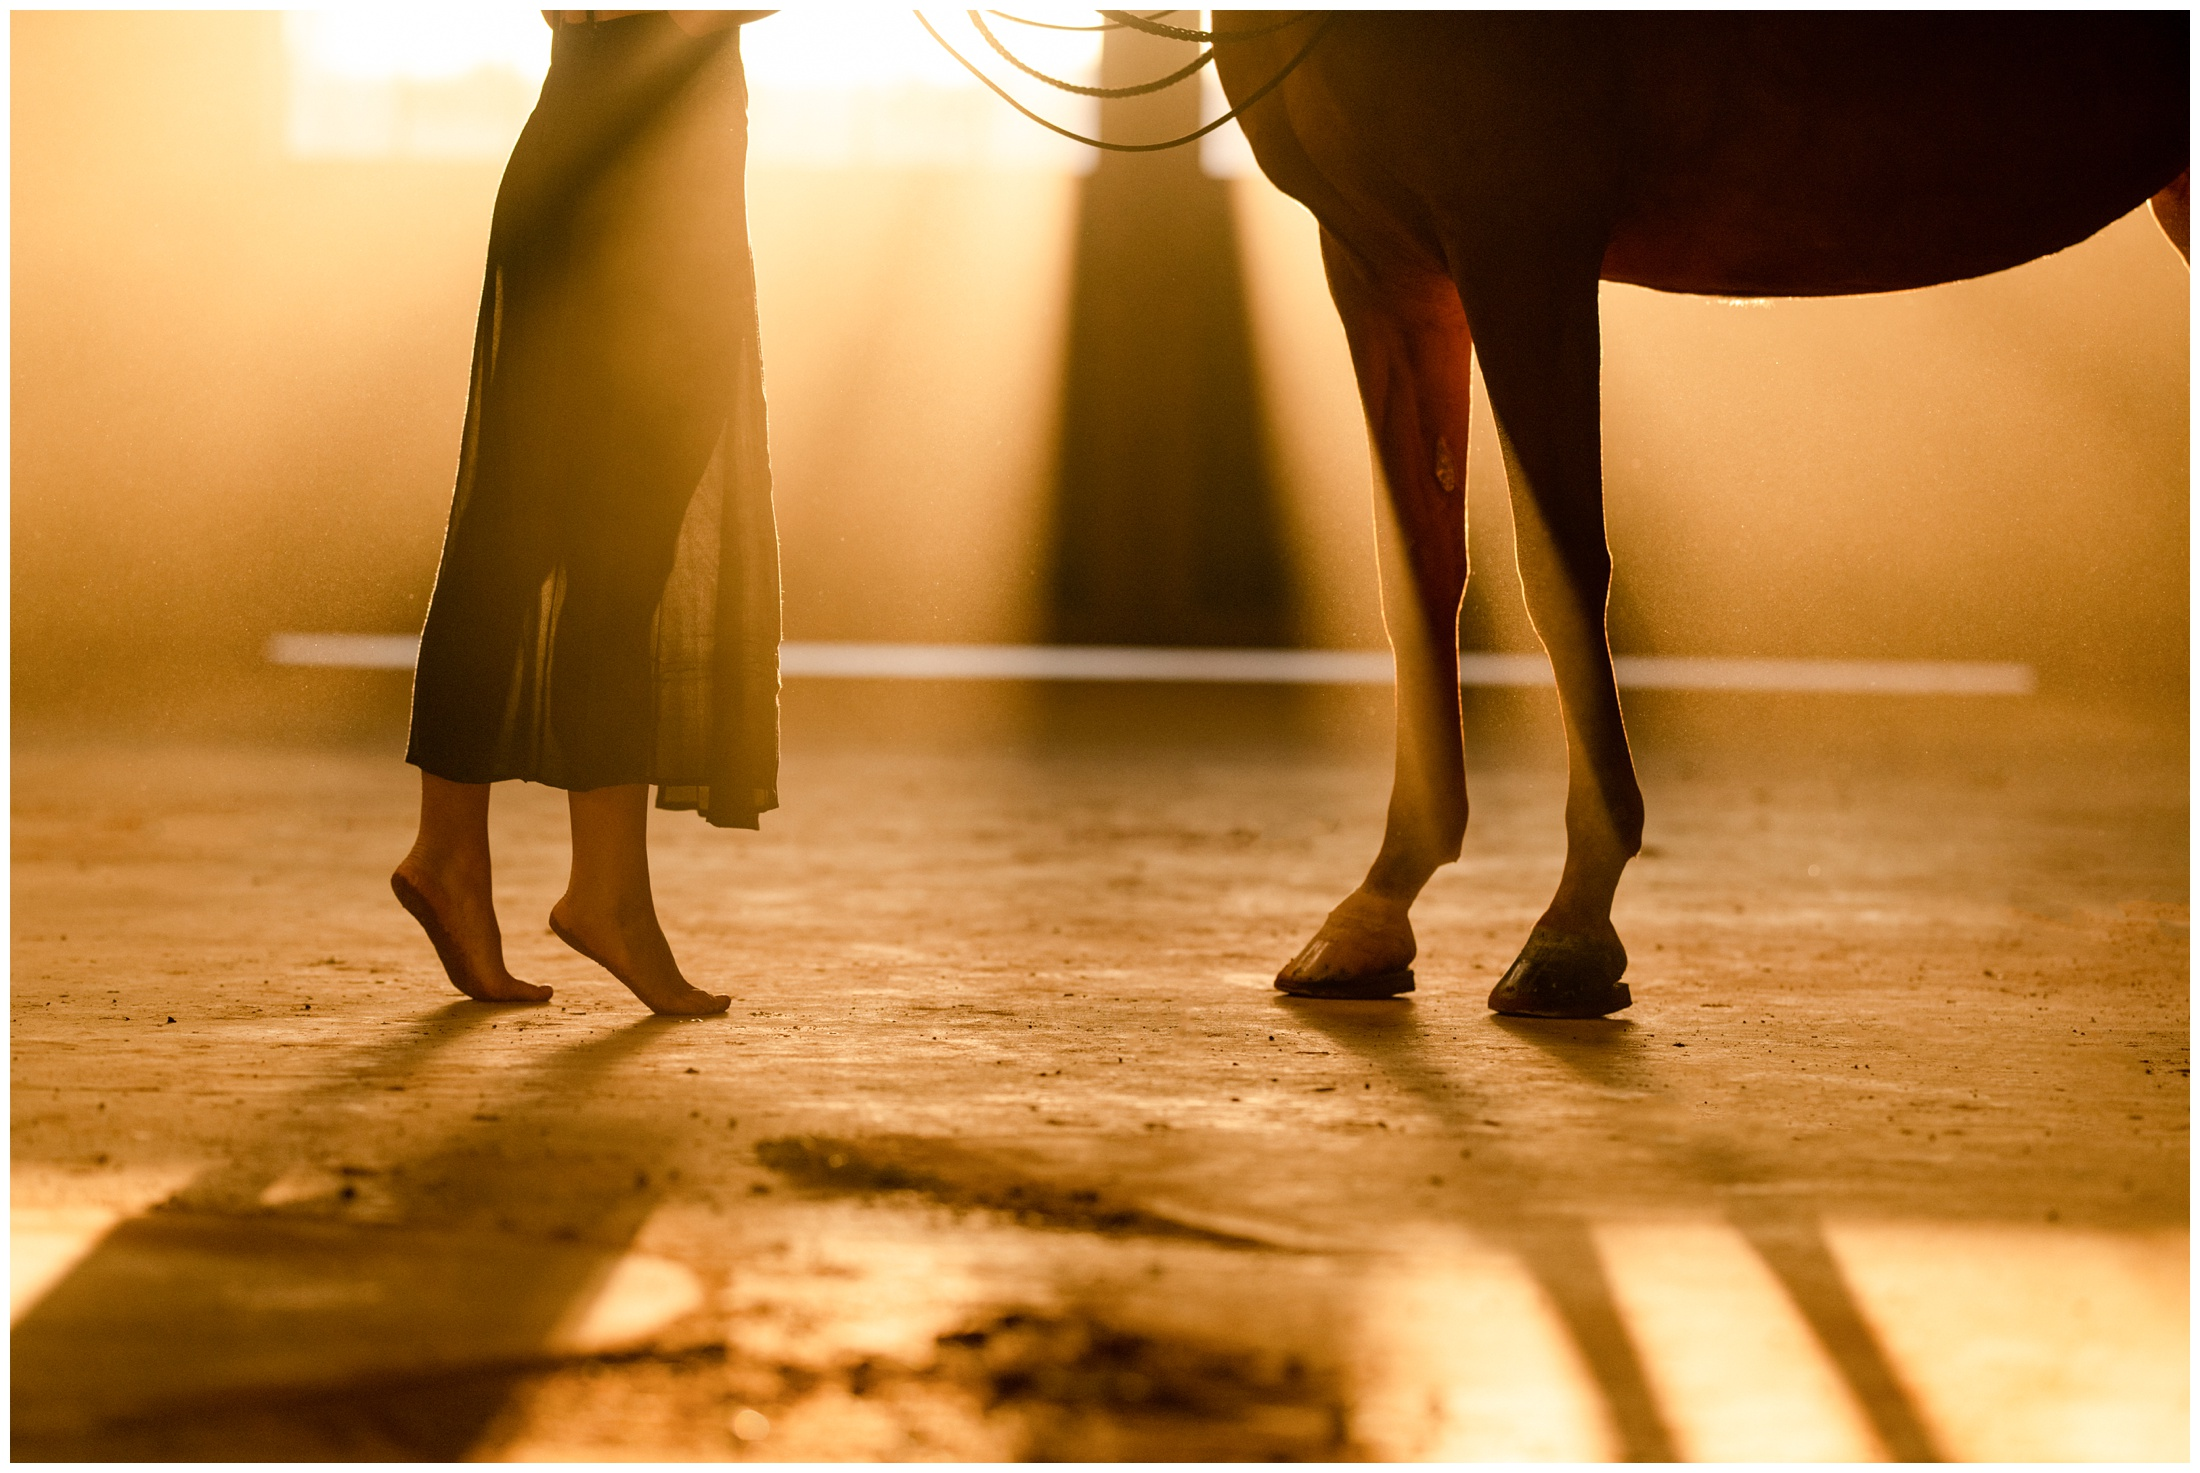 Dramatic sunset lighting showing the legs of a girl in a skirt and the horse's front feet